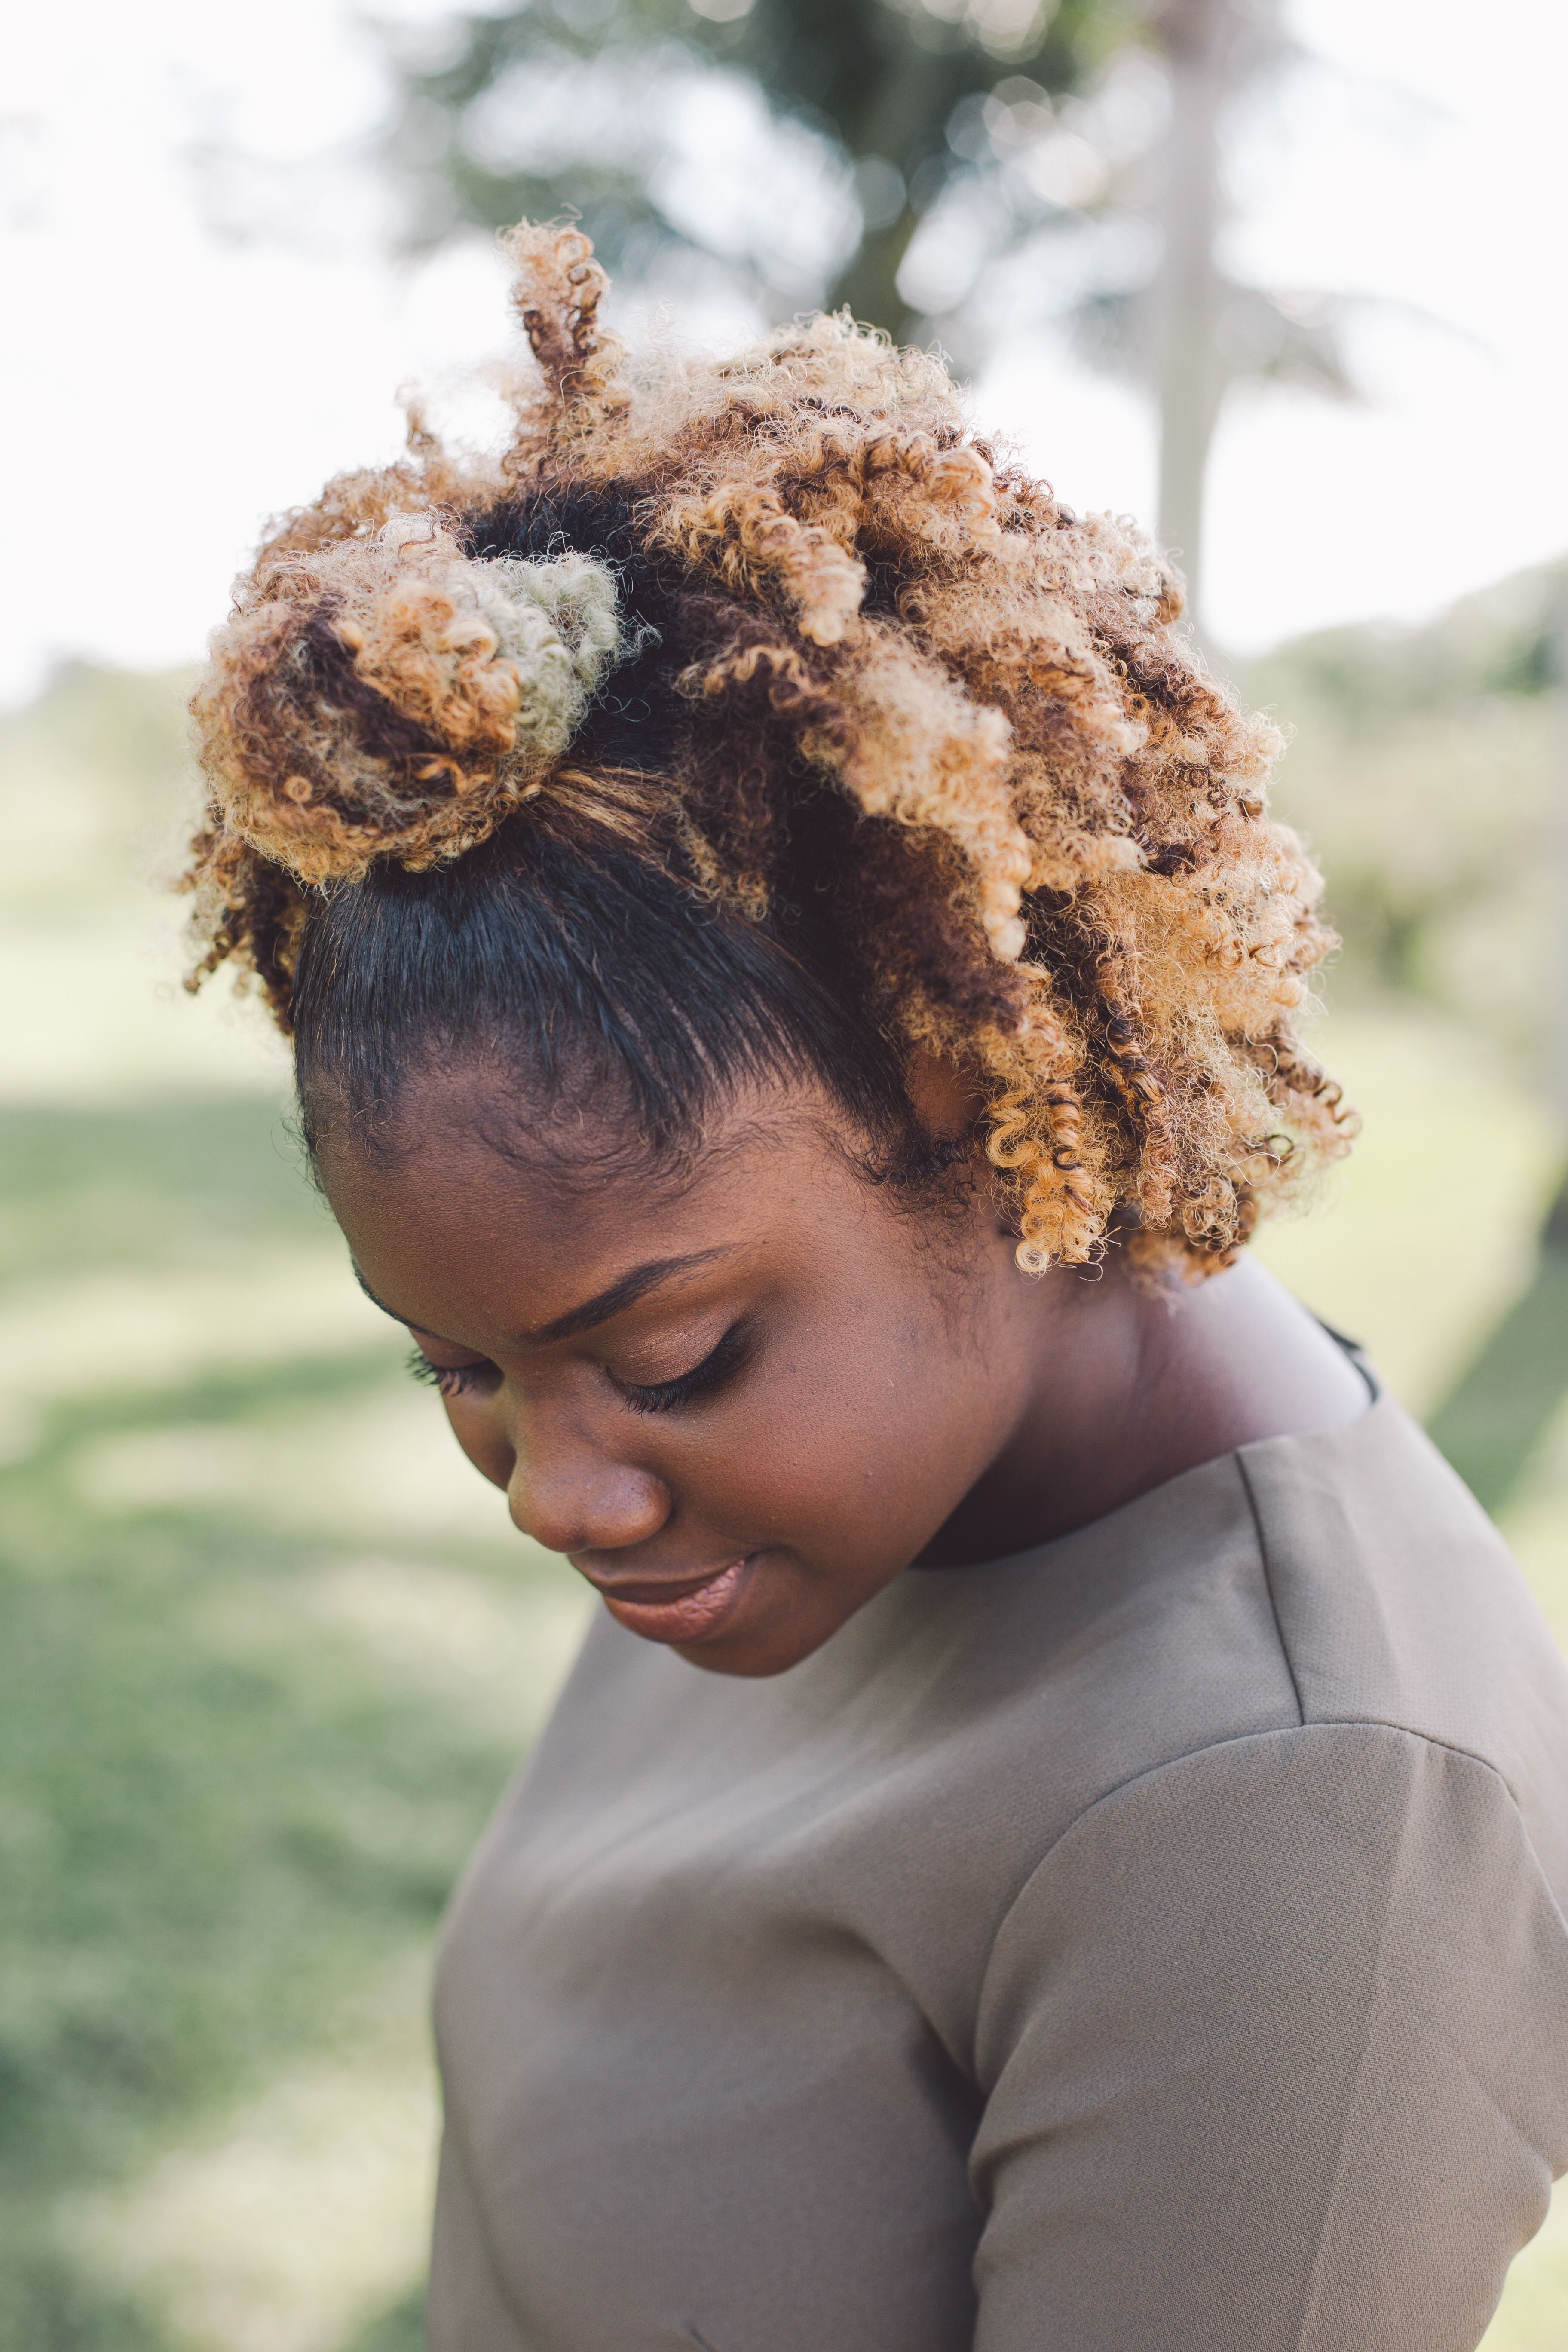 Natural hair Afro Centric True to my Roots Pinterest